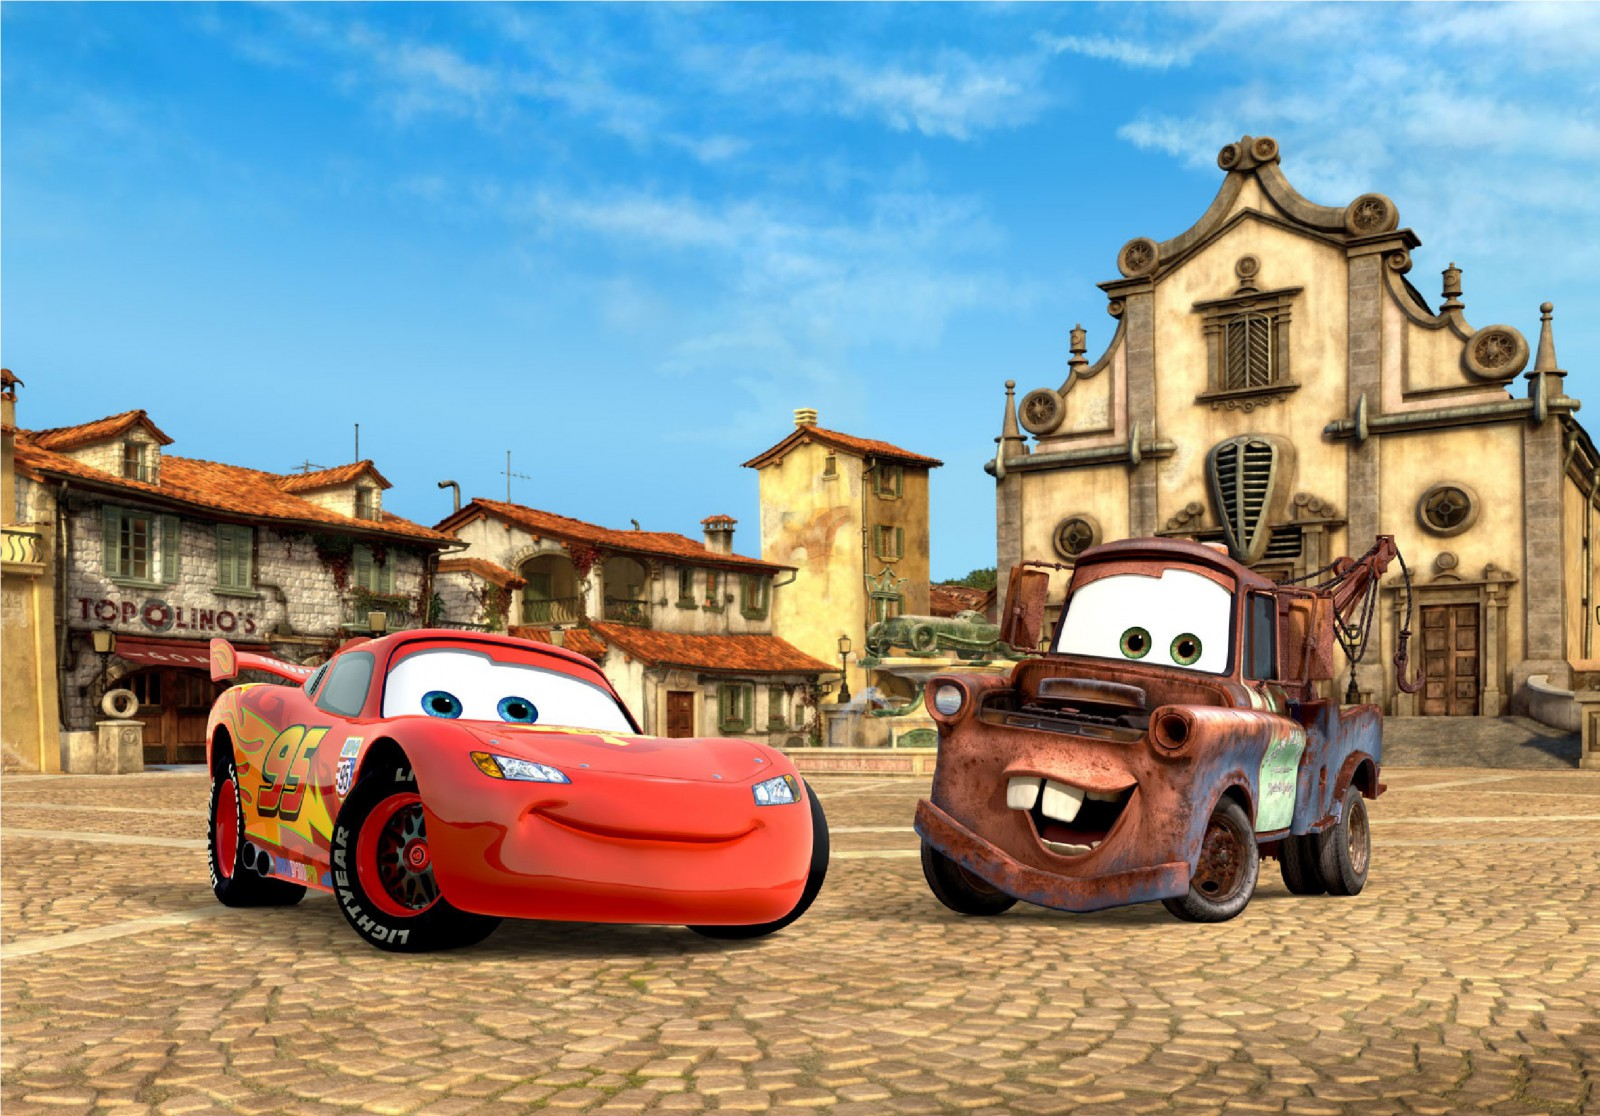 Xxl photo wallpaper disney cars lightning mcqueen mural - Disney cars wallpaper ...